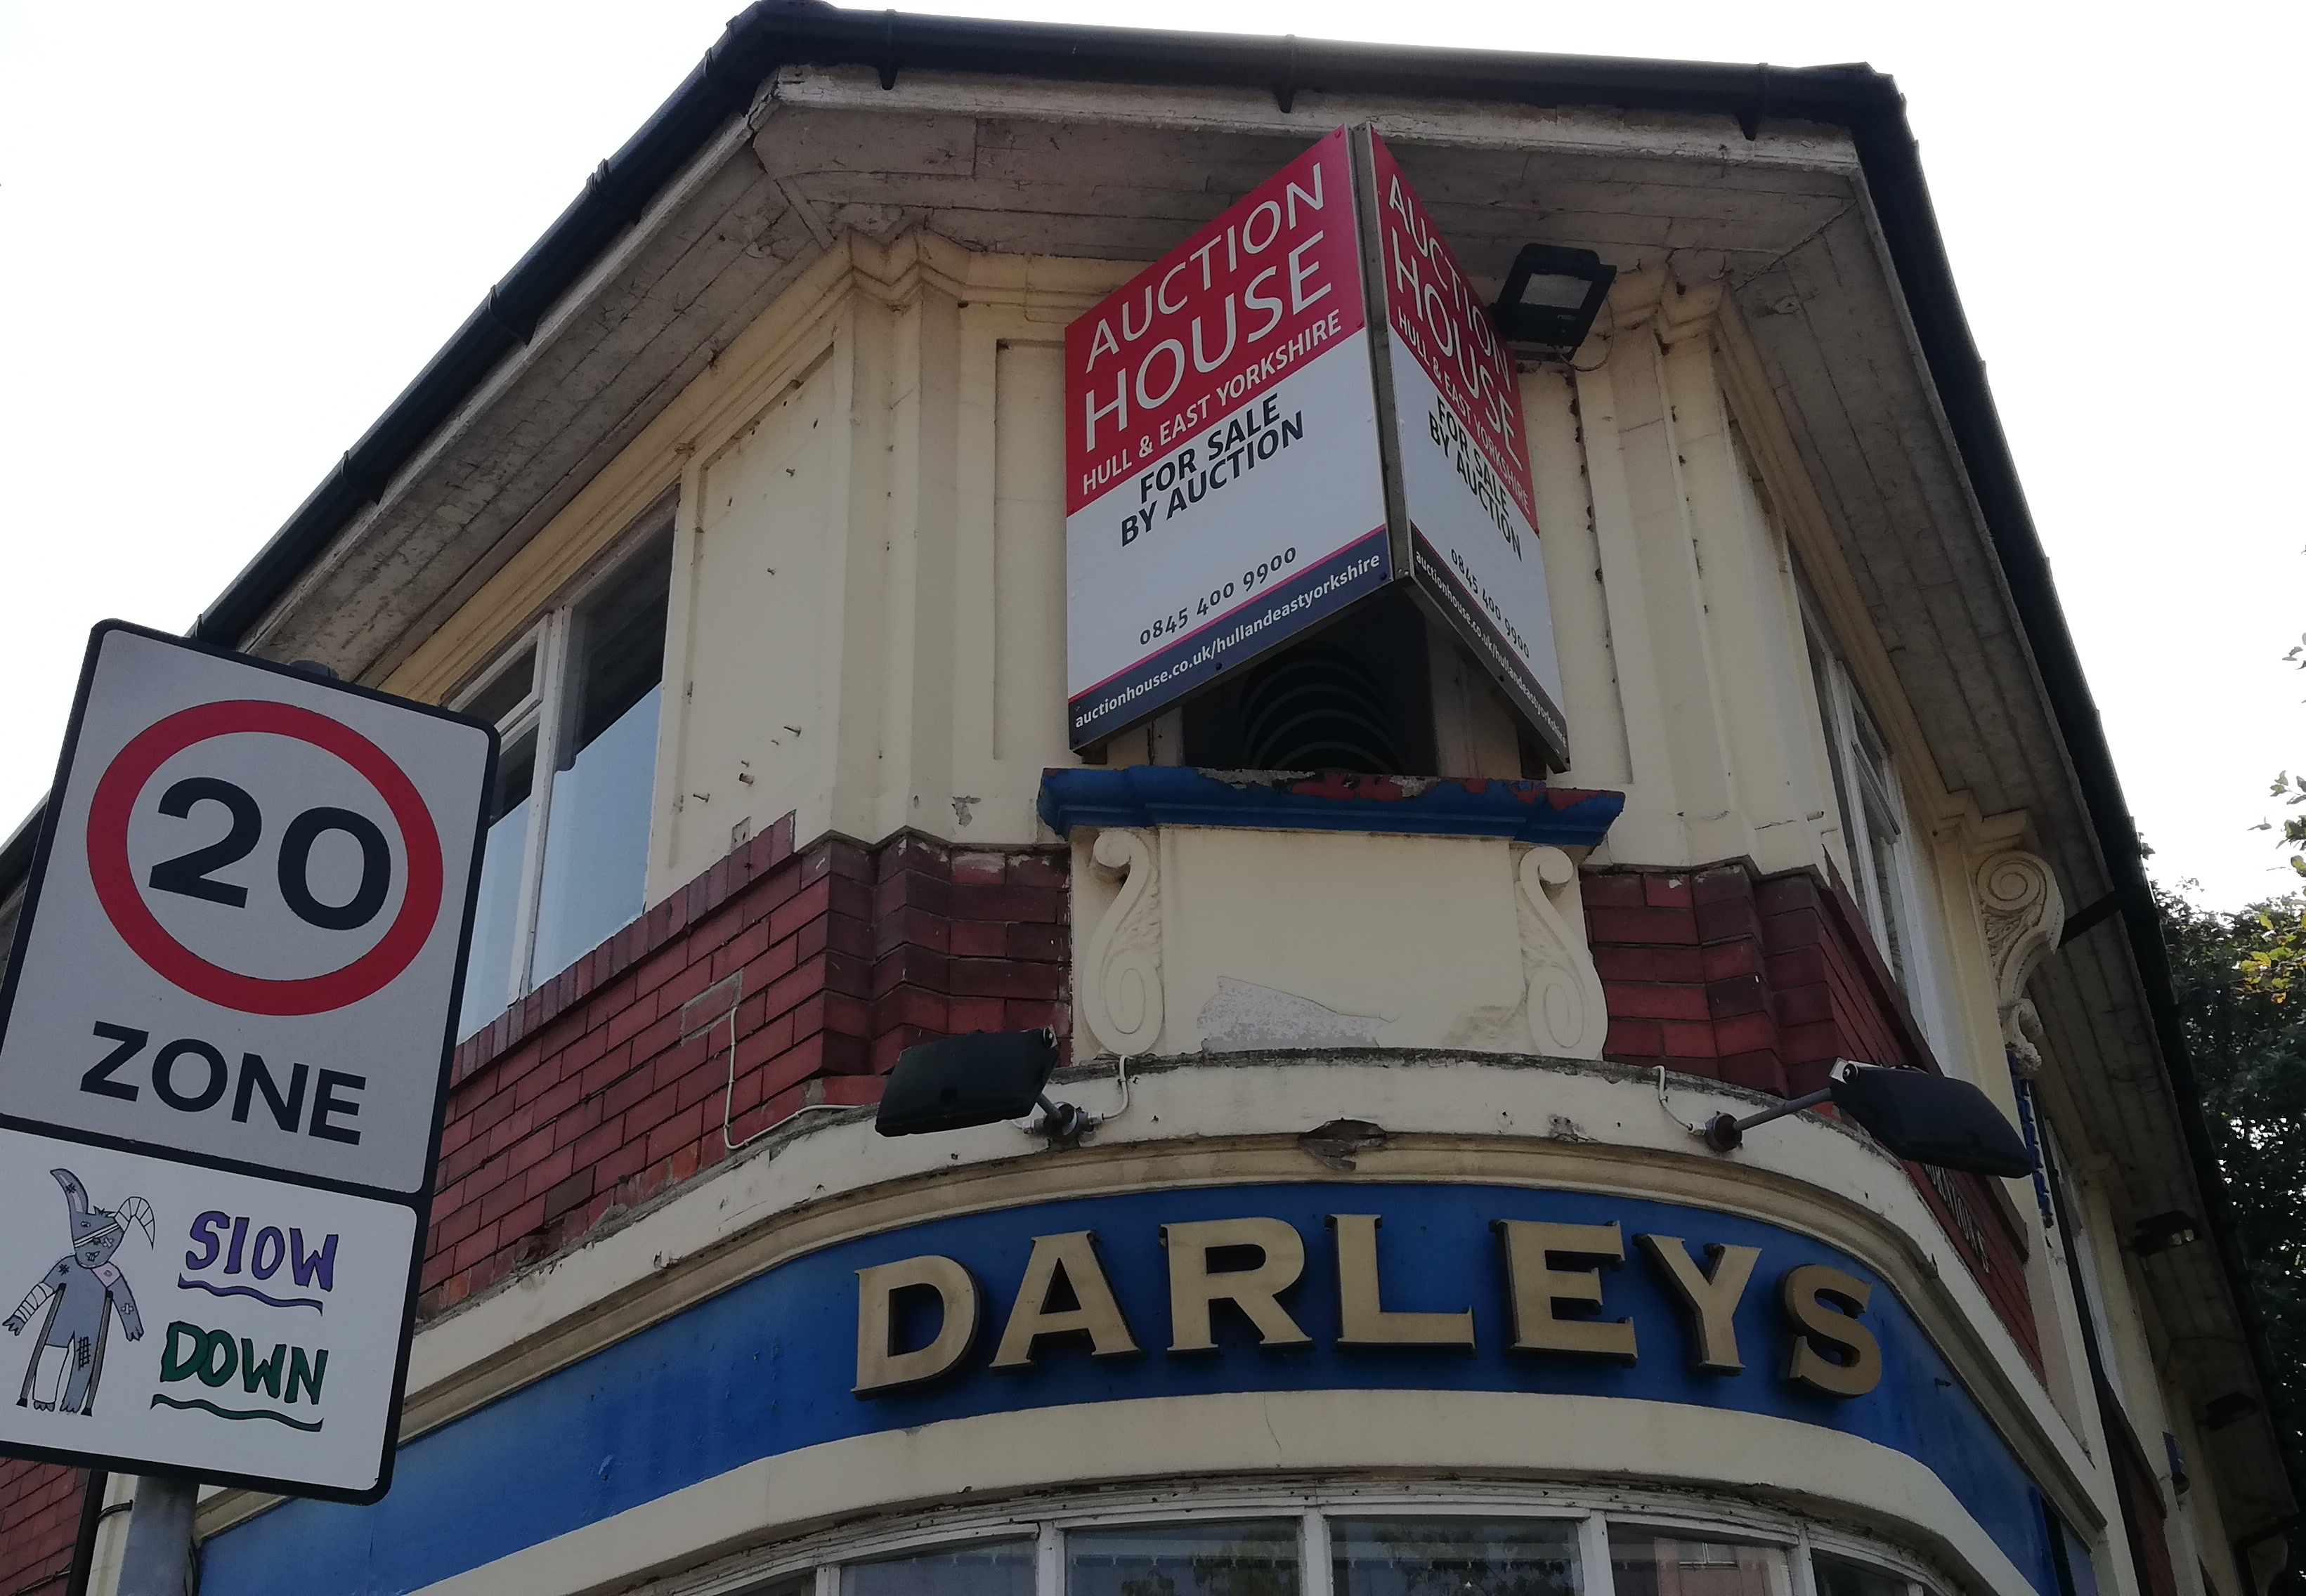 The Darley's pub with an auction house sign on the outside